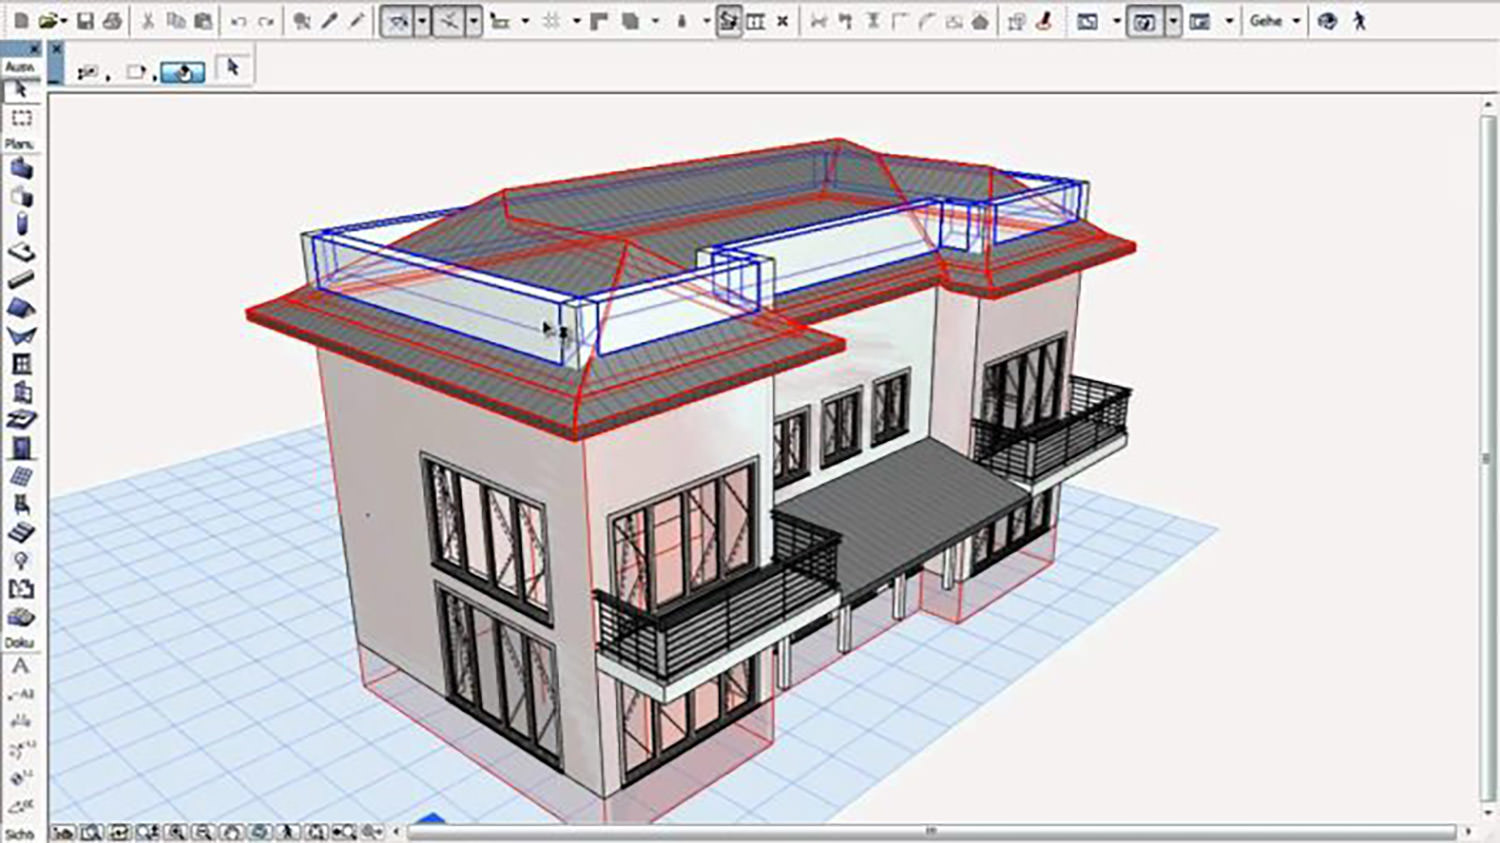 ArchiCAD by Graphisoft